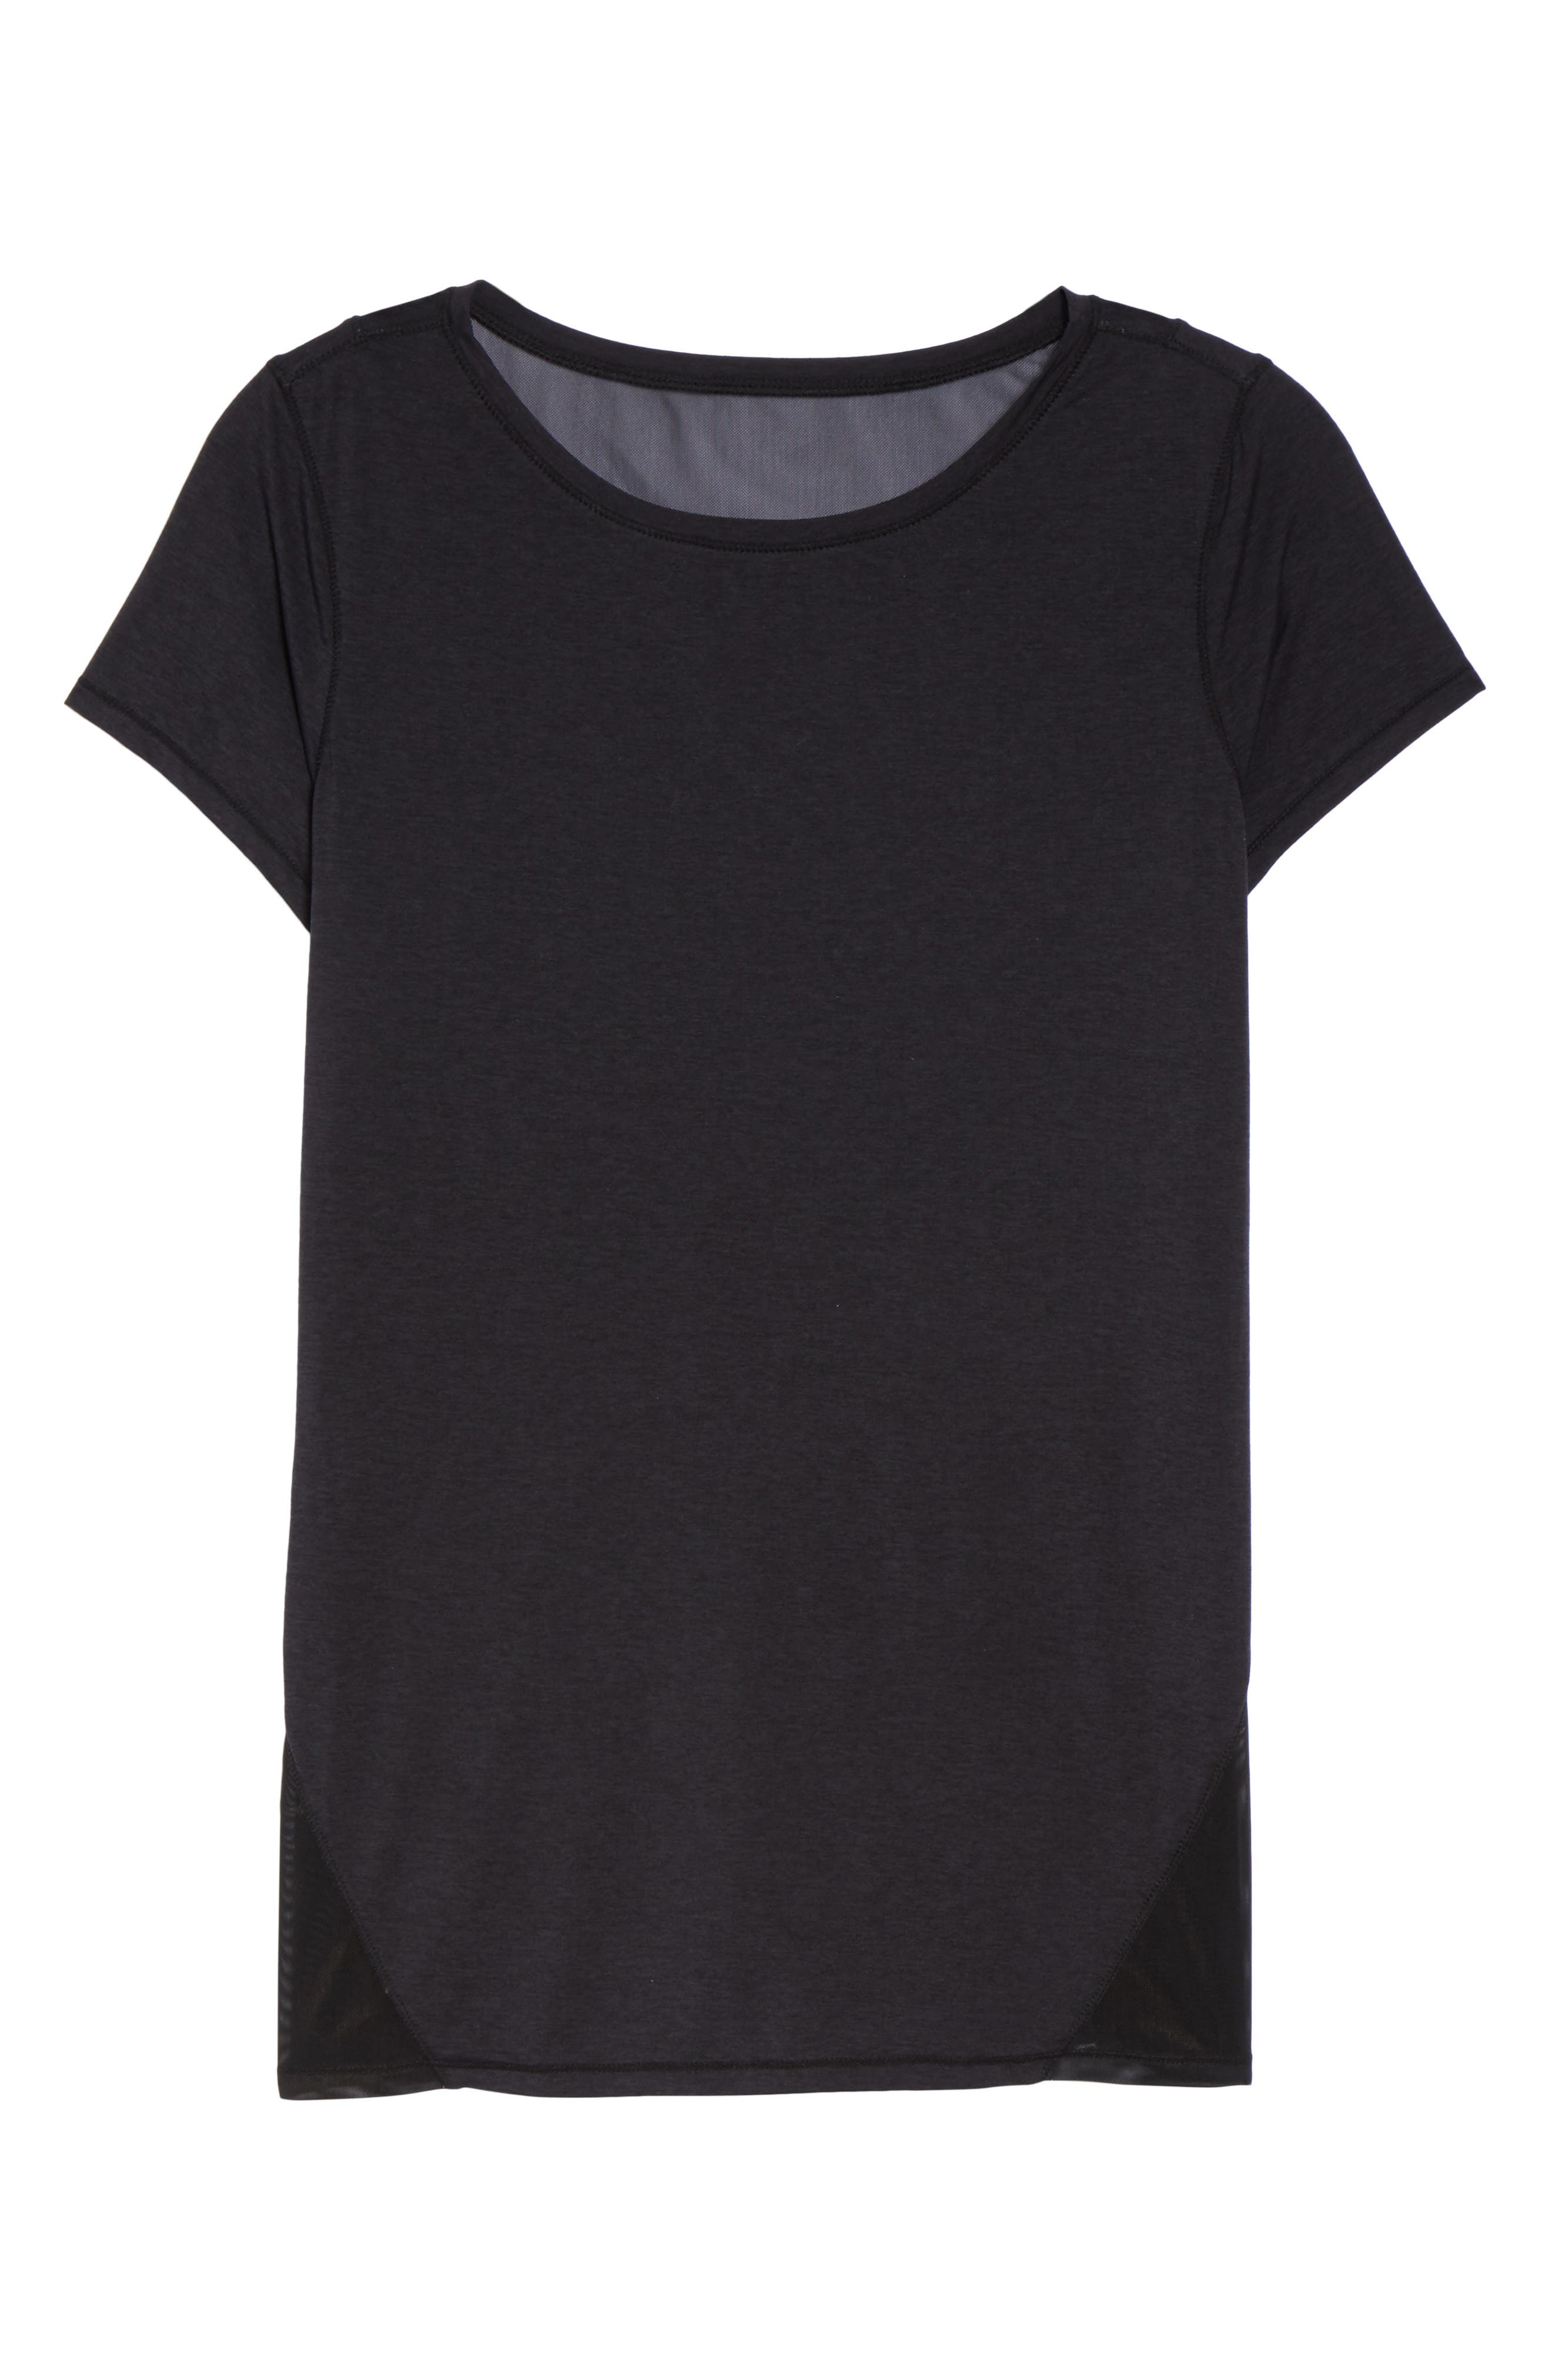 Fiona Mesh Inset Tee,                             Alternate thumbnail 11, color,                             Black